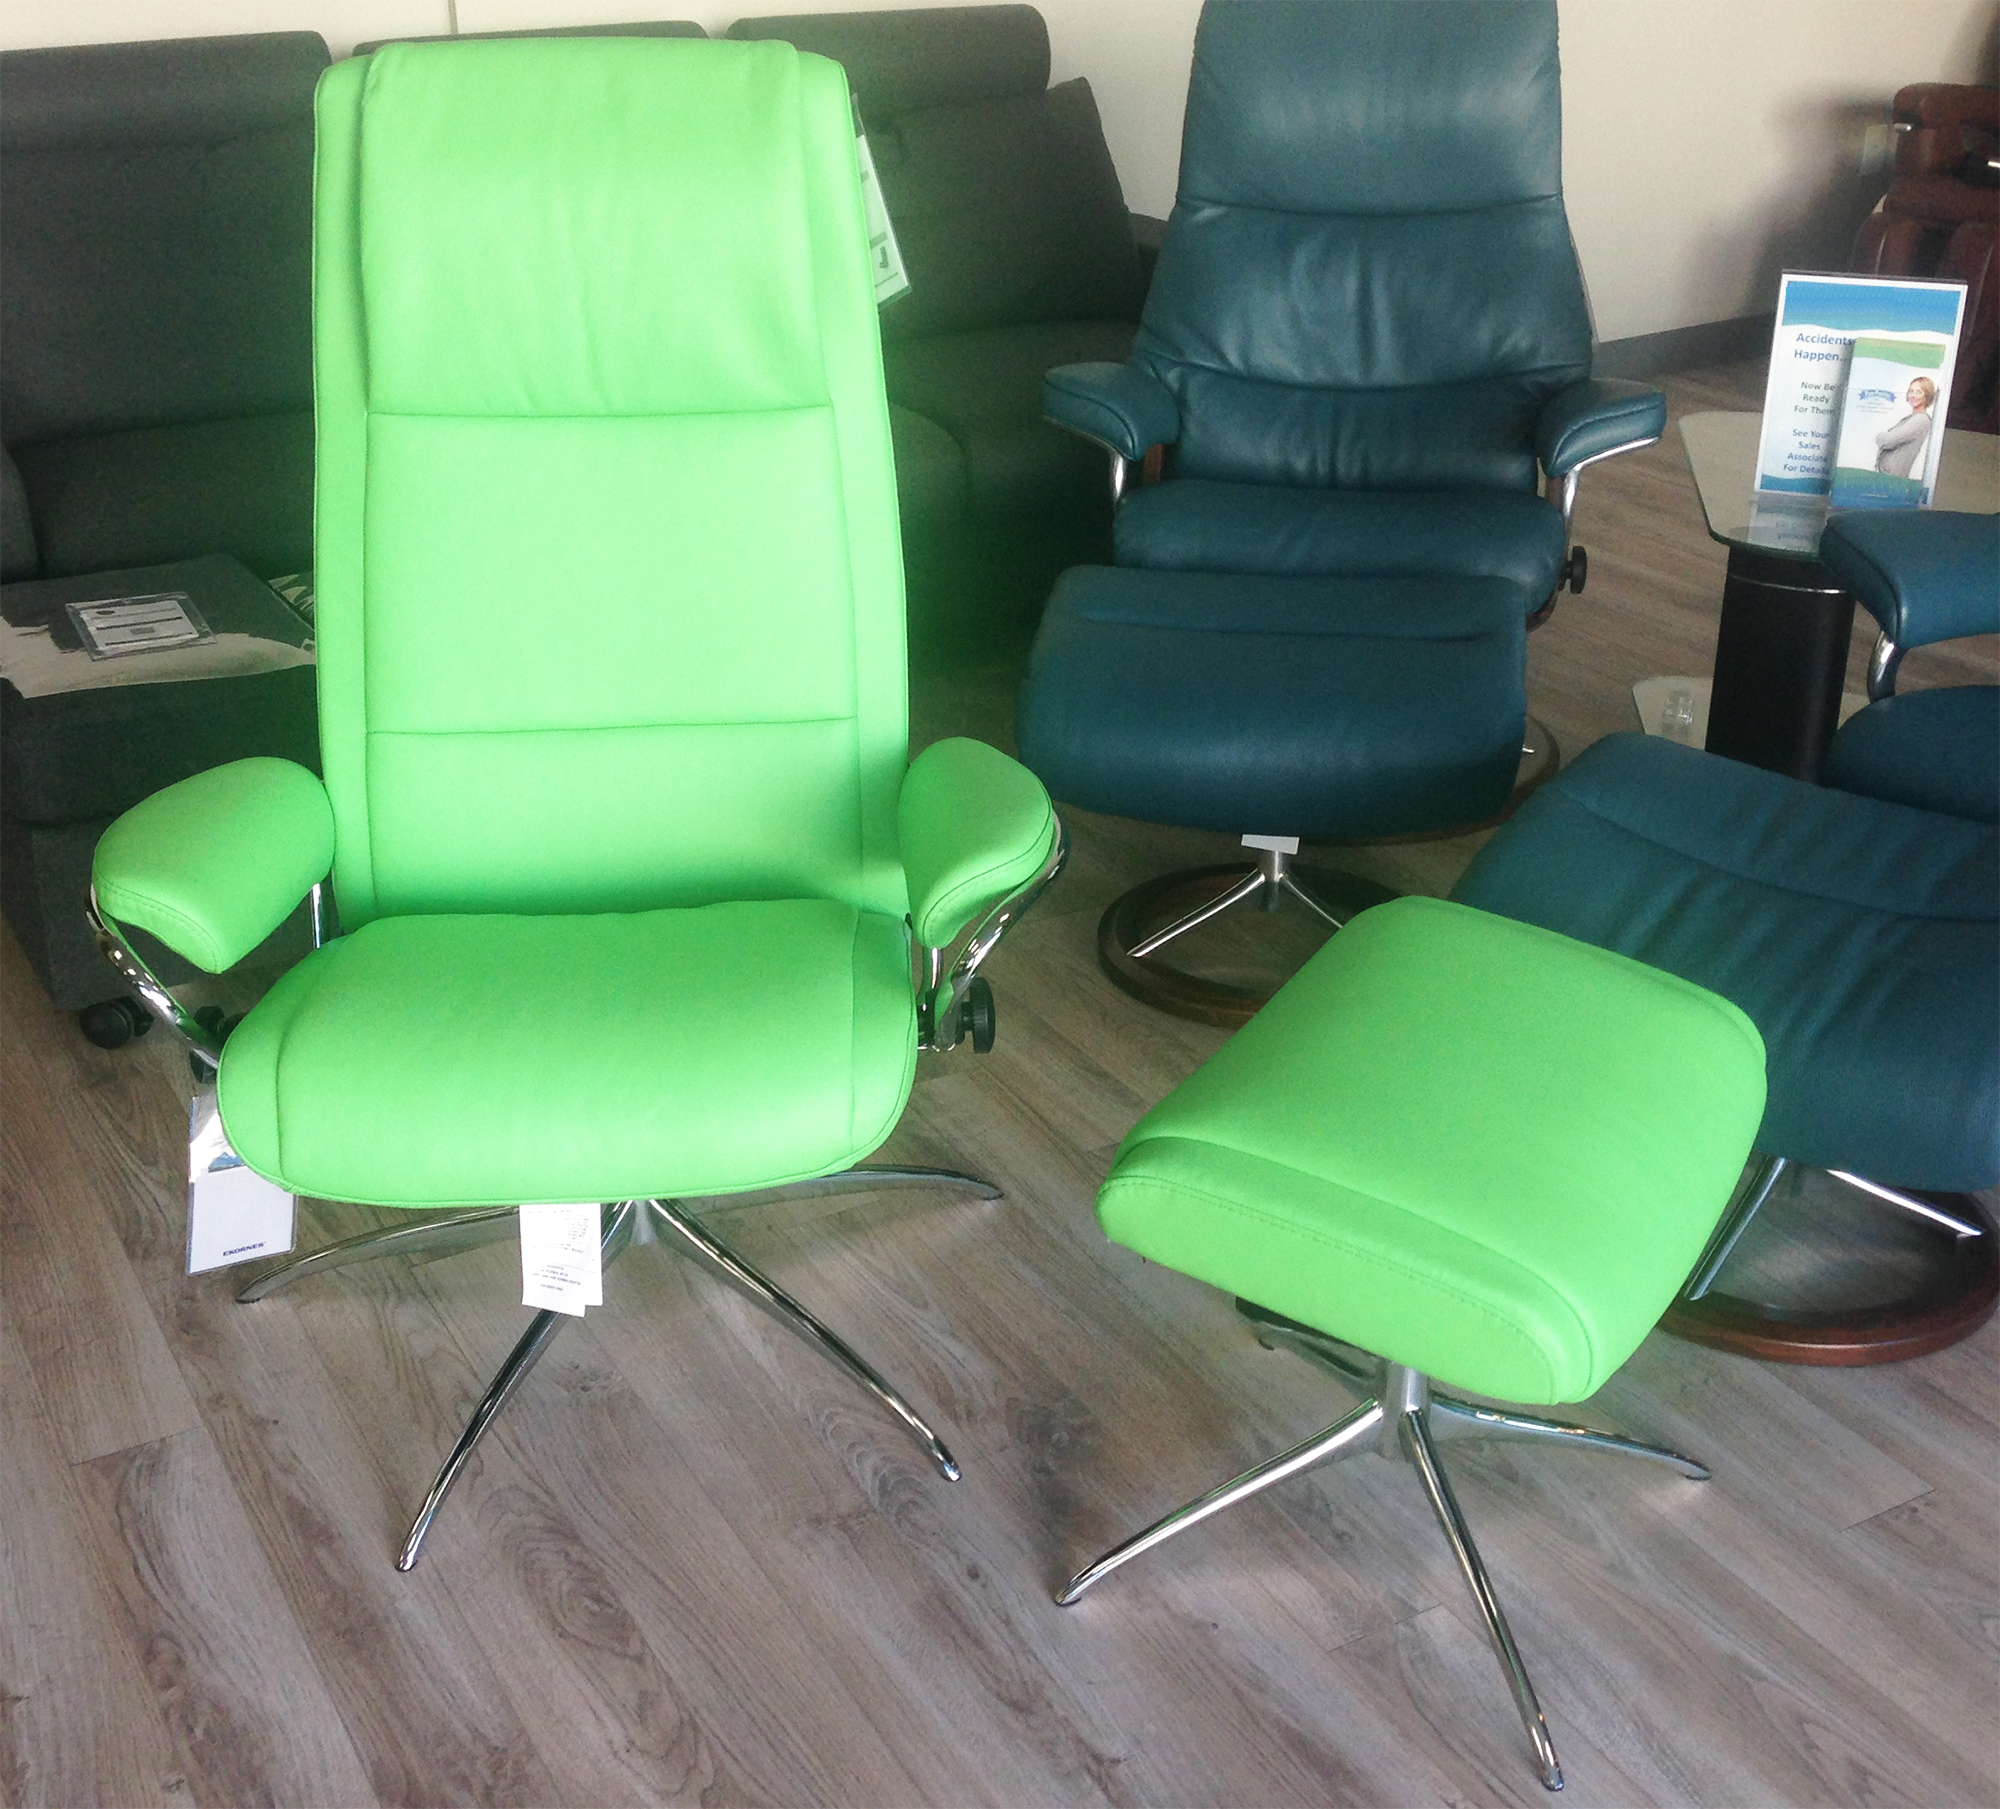 Incredible Stressless Paloma Summer Green 09491 Leather By Ekornes Bralicious Painted Fabric Chair Ideas Braliciousco